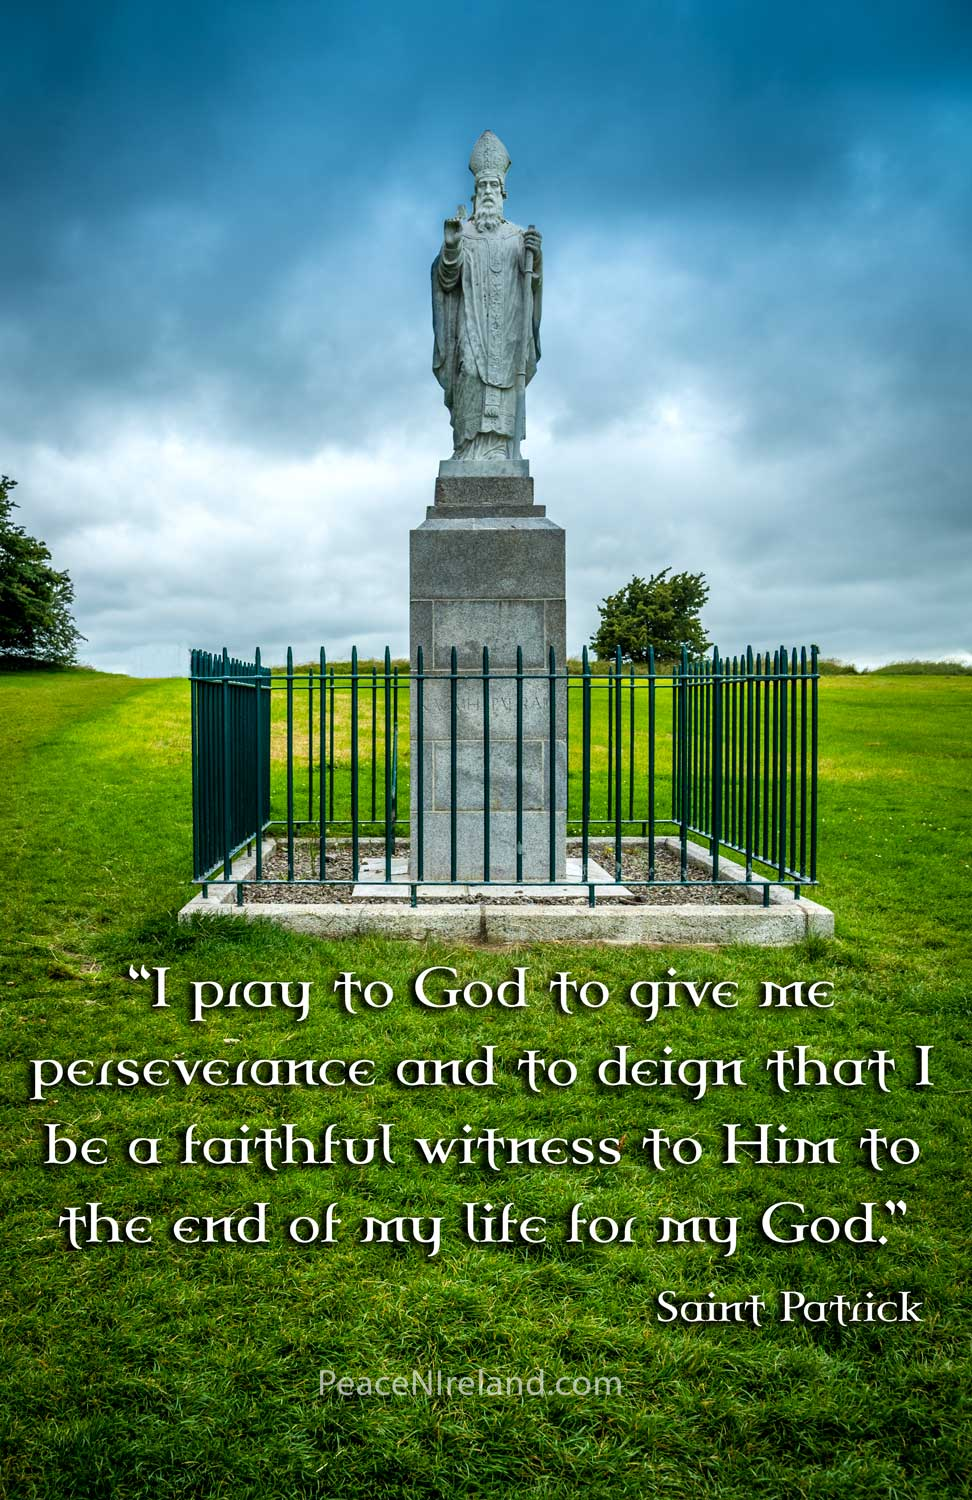 Figure of St Patrick at Hill of Tara, County Meath, where he defied the orders of the High King.